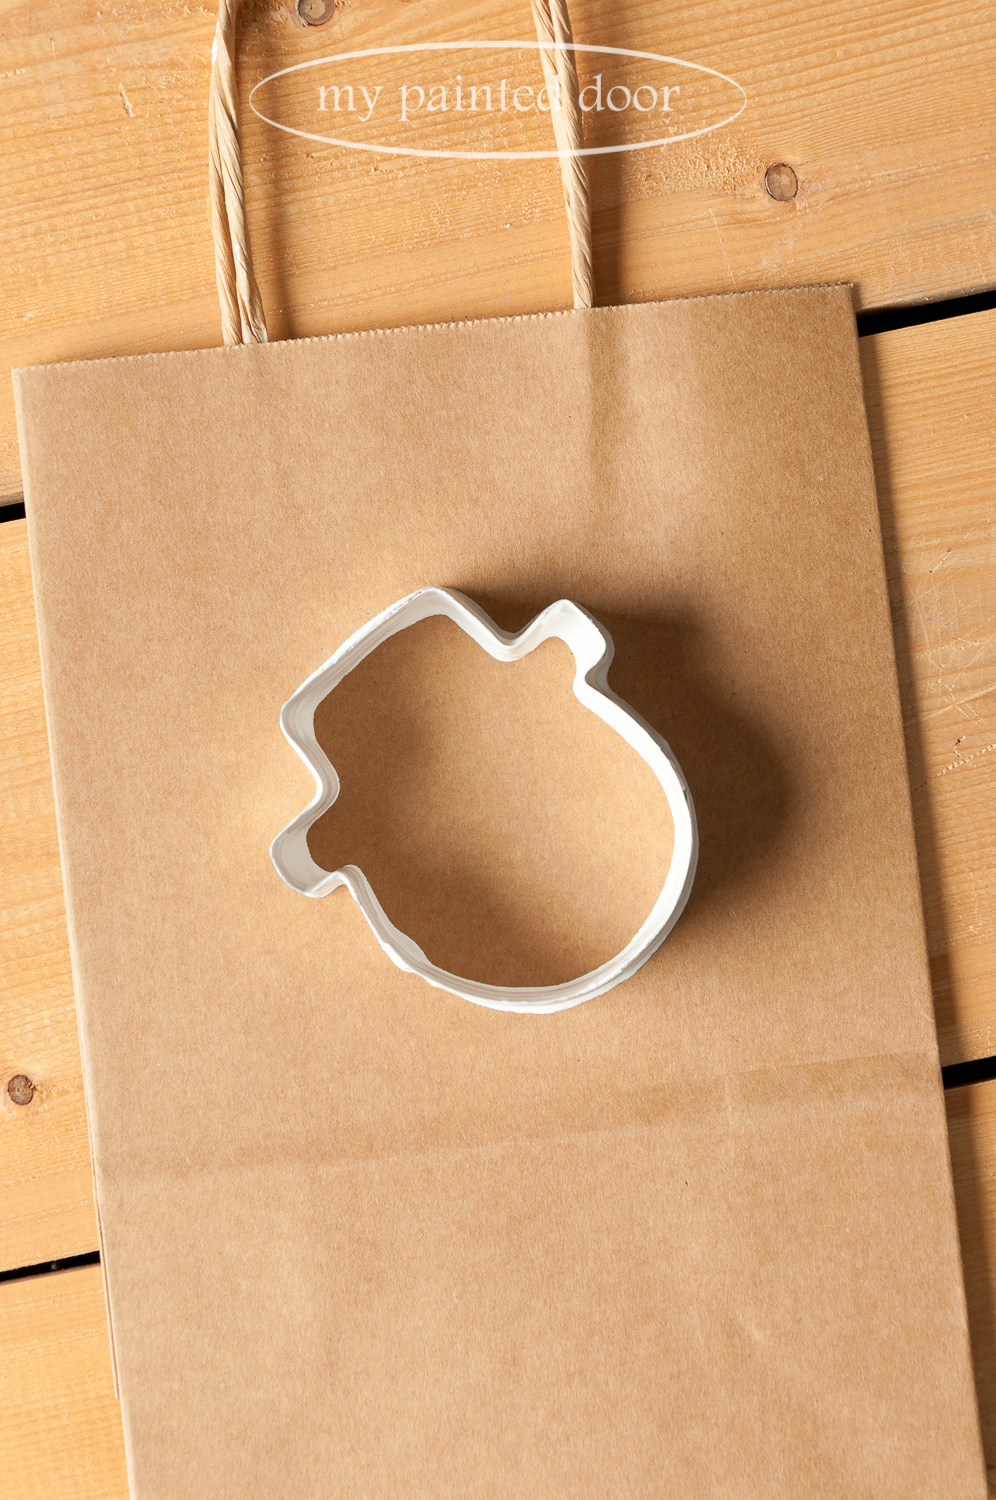 Cookie cutters dipped in Fusion Mineral Paint is a simple way to decorate gift bags for the Holiday Season.